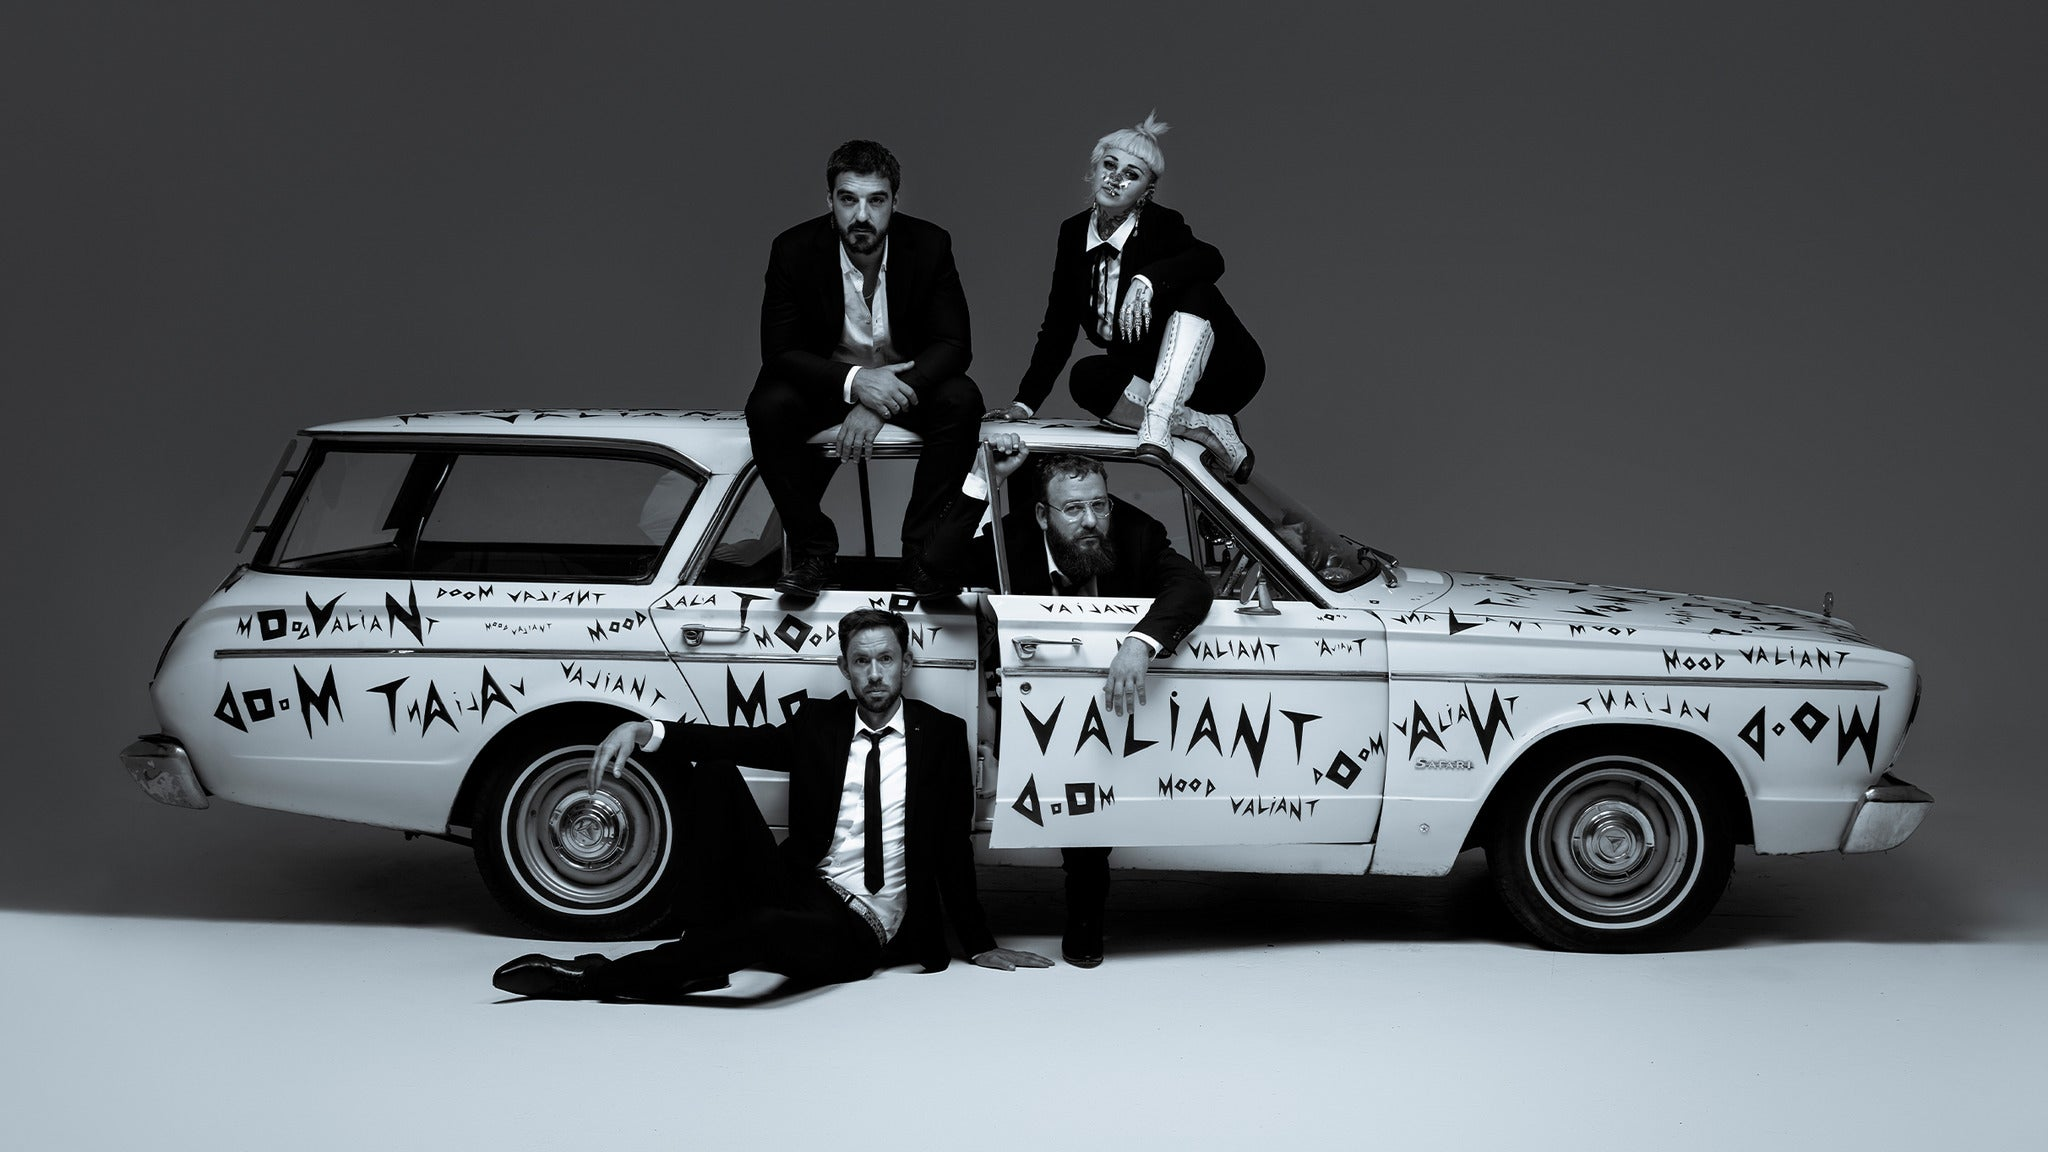 Image used with permission from Ticketmaster   Hiatus Kaiyote - Mood Valiant Album Tour tickets